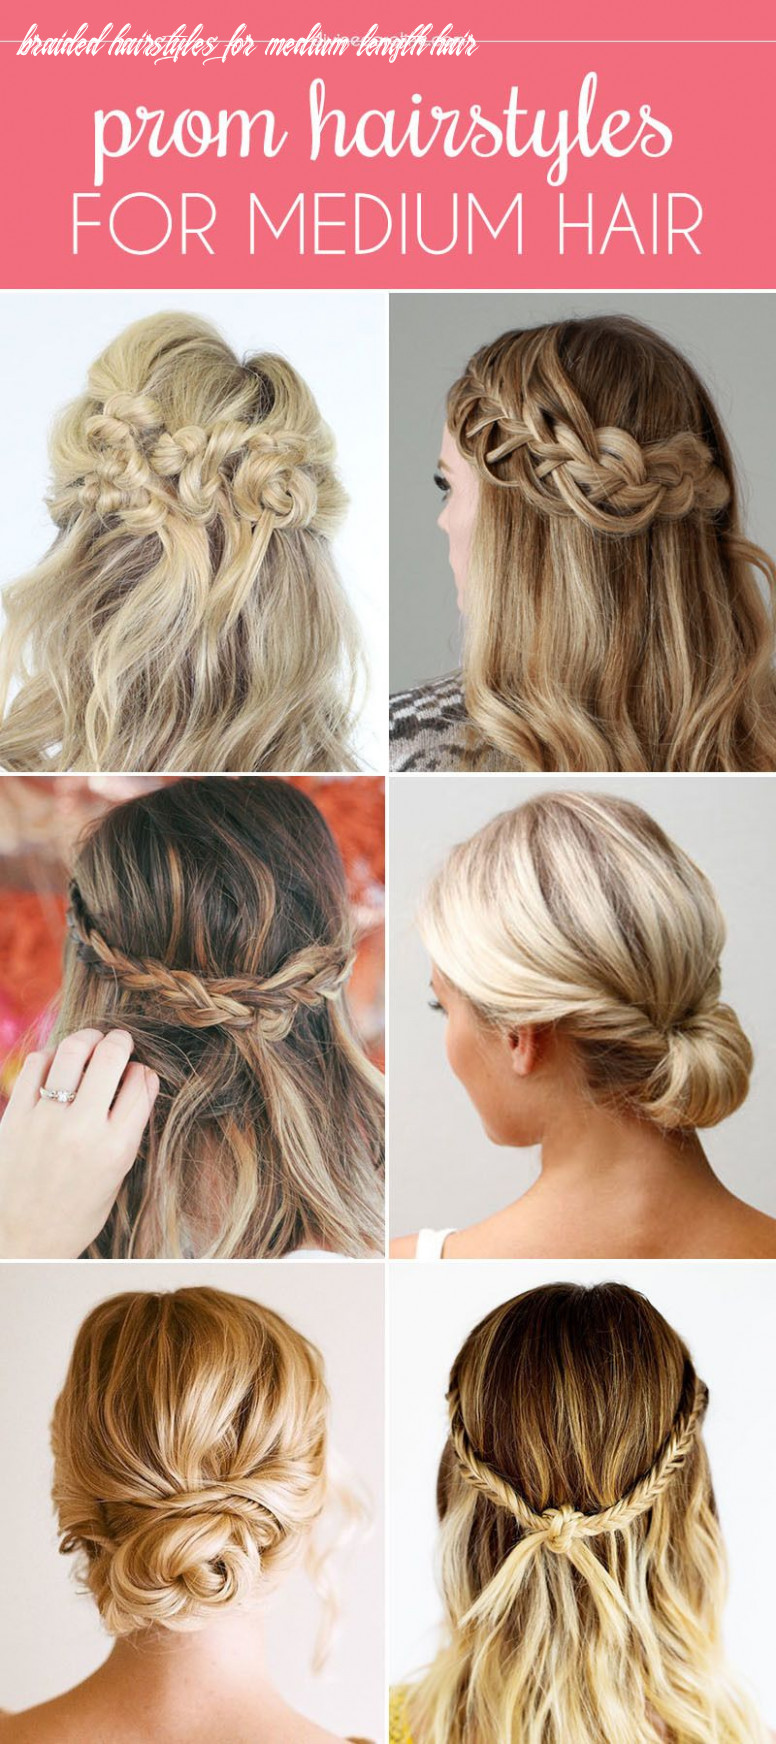 Our favorite prom hairstyles for medium length hair | prom hair